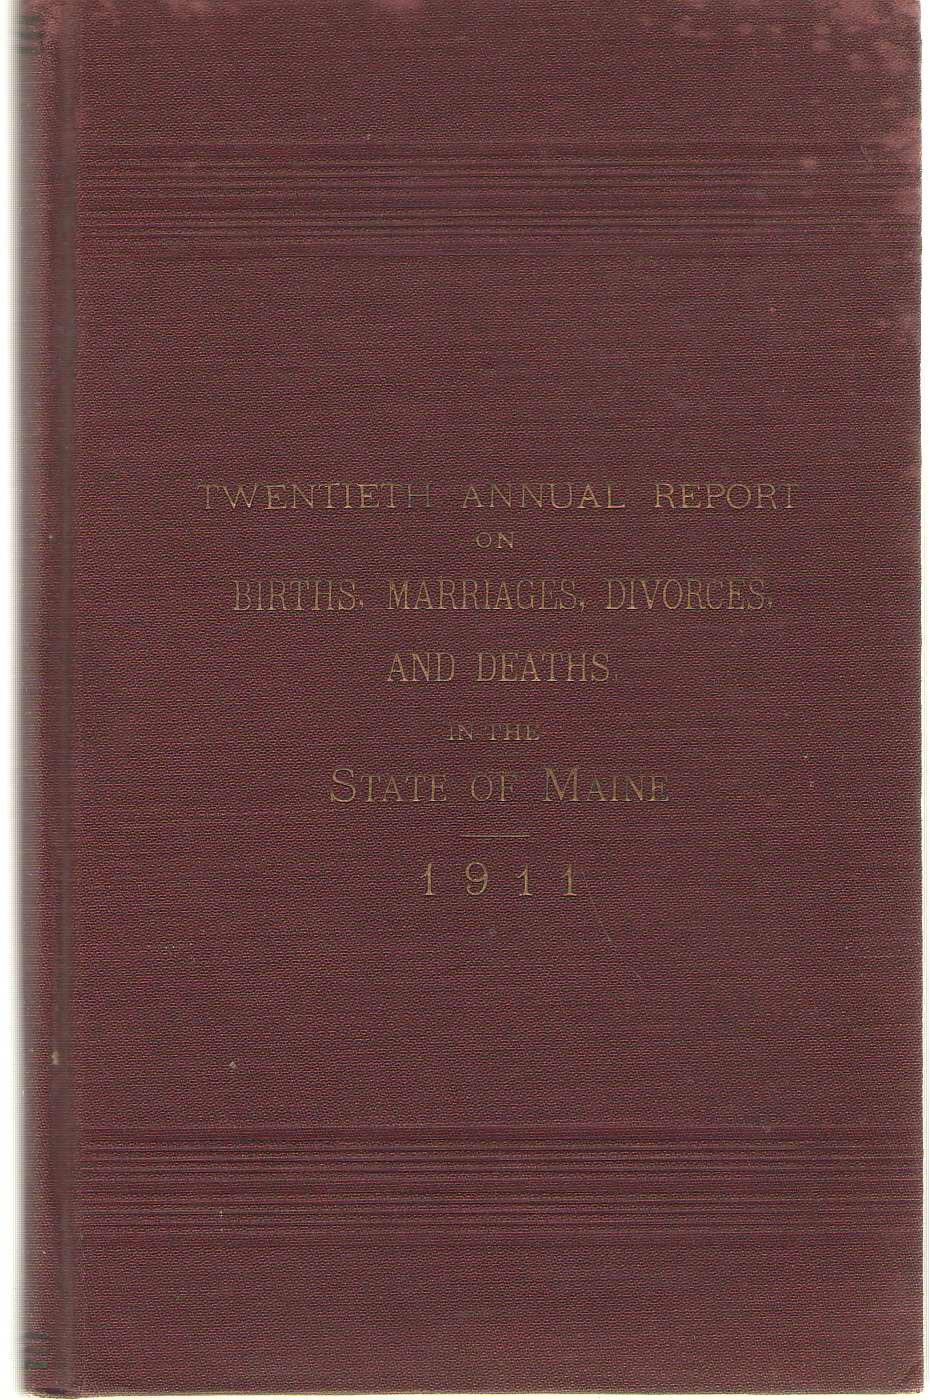 Image for Twentieth Annual Report On Births, Marriages, Divorces, And Deaths, In The State Of Maine For The Year Ending December 31, 1911